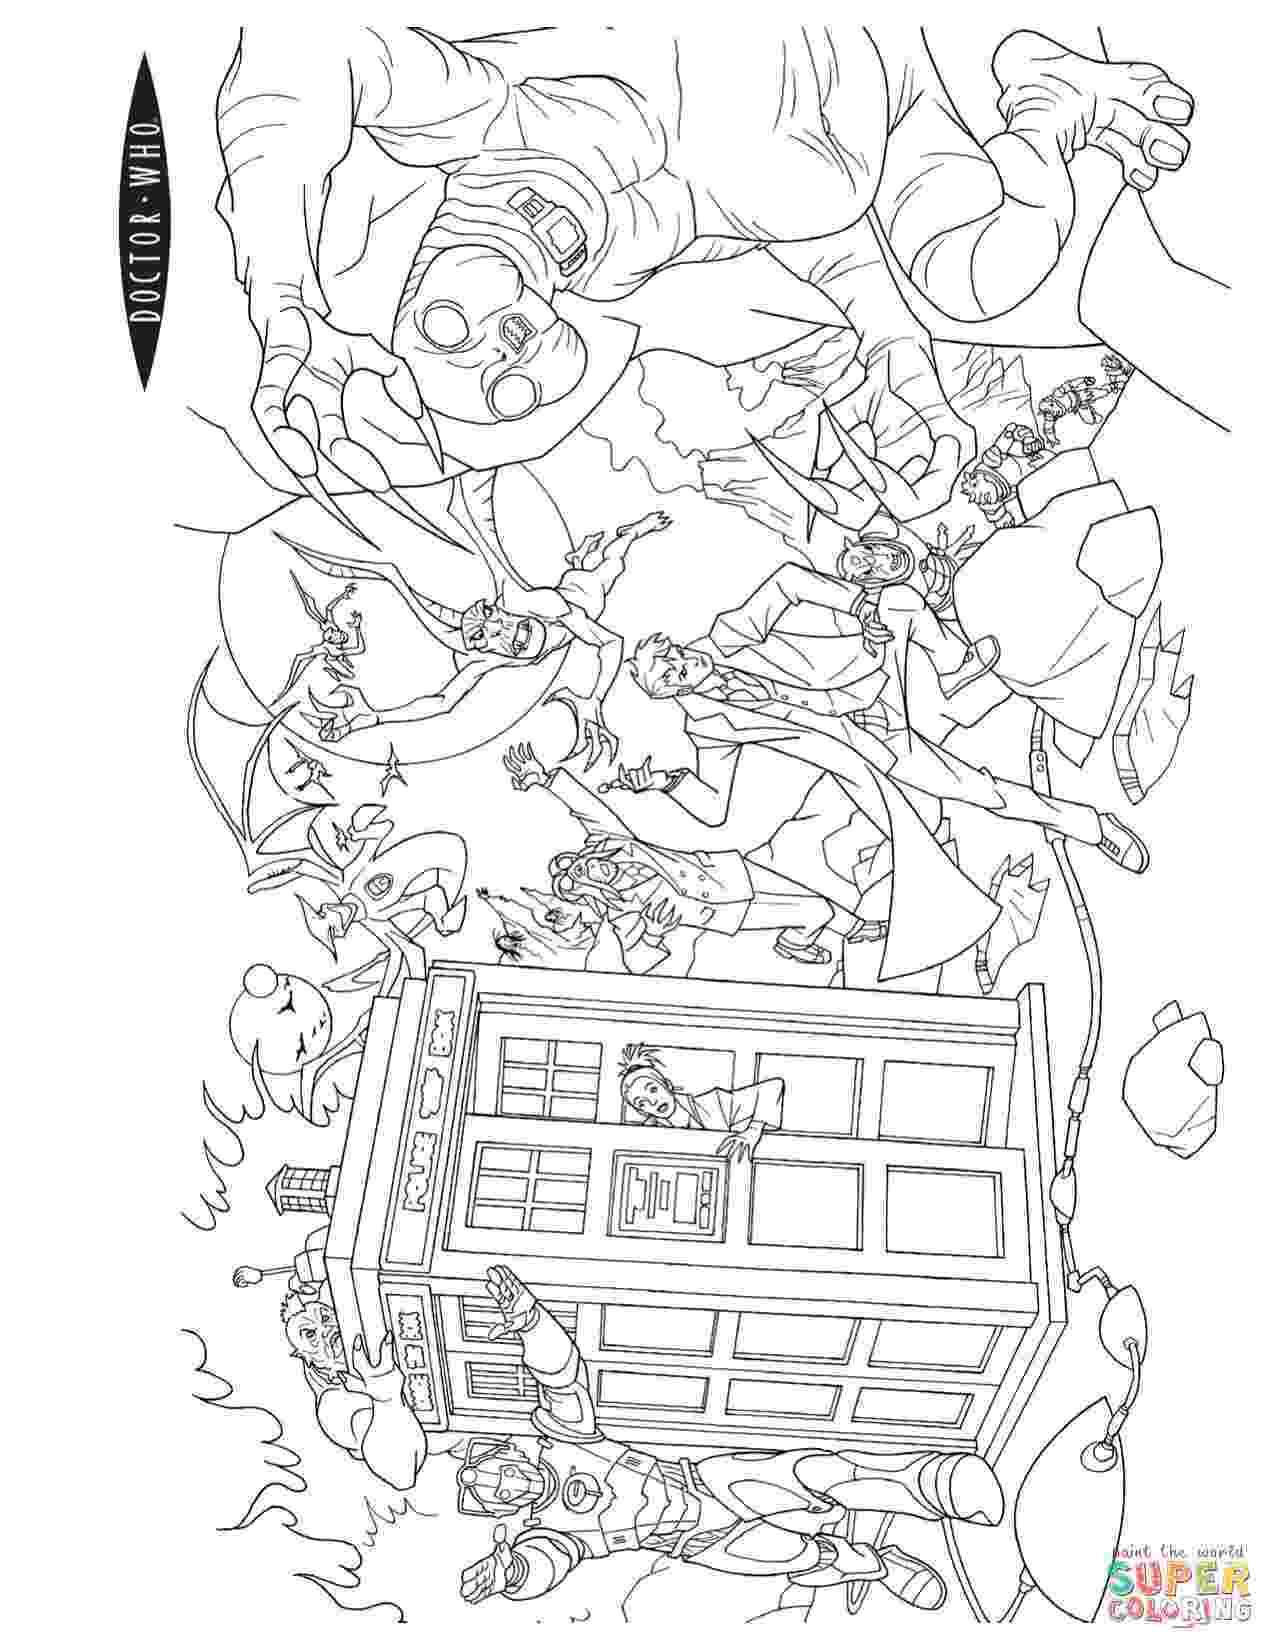 dr who pictures to colour doctor who coloring pages getcoloringpagescom colour pictures dr who to